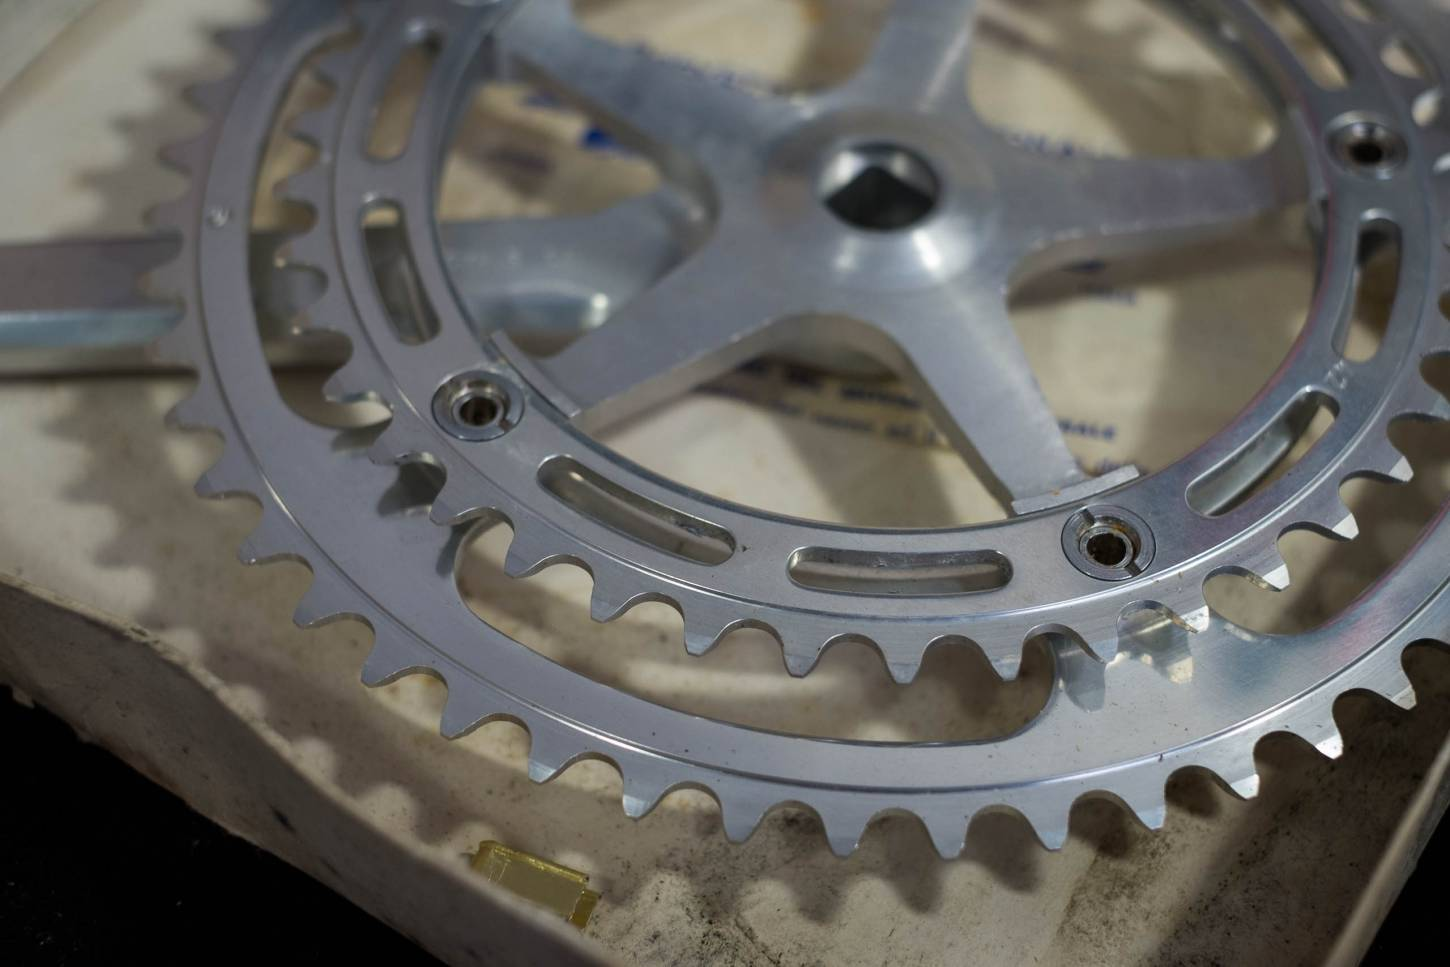 NOS Campagnolo 1049 Nuovo Record Strada crank set crankset 52/42 teeth LK 144 Vintage road bike